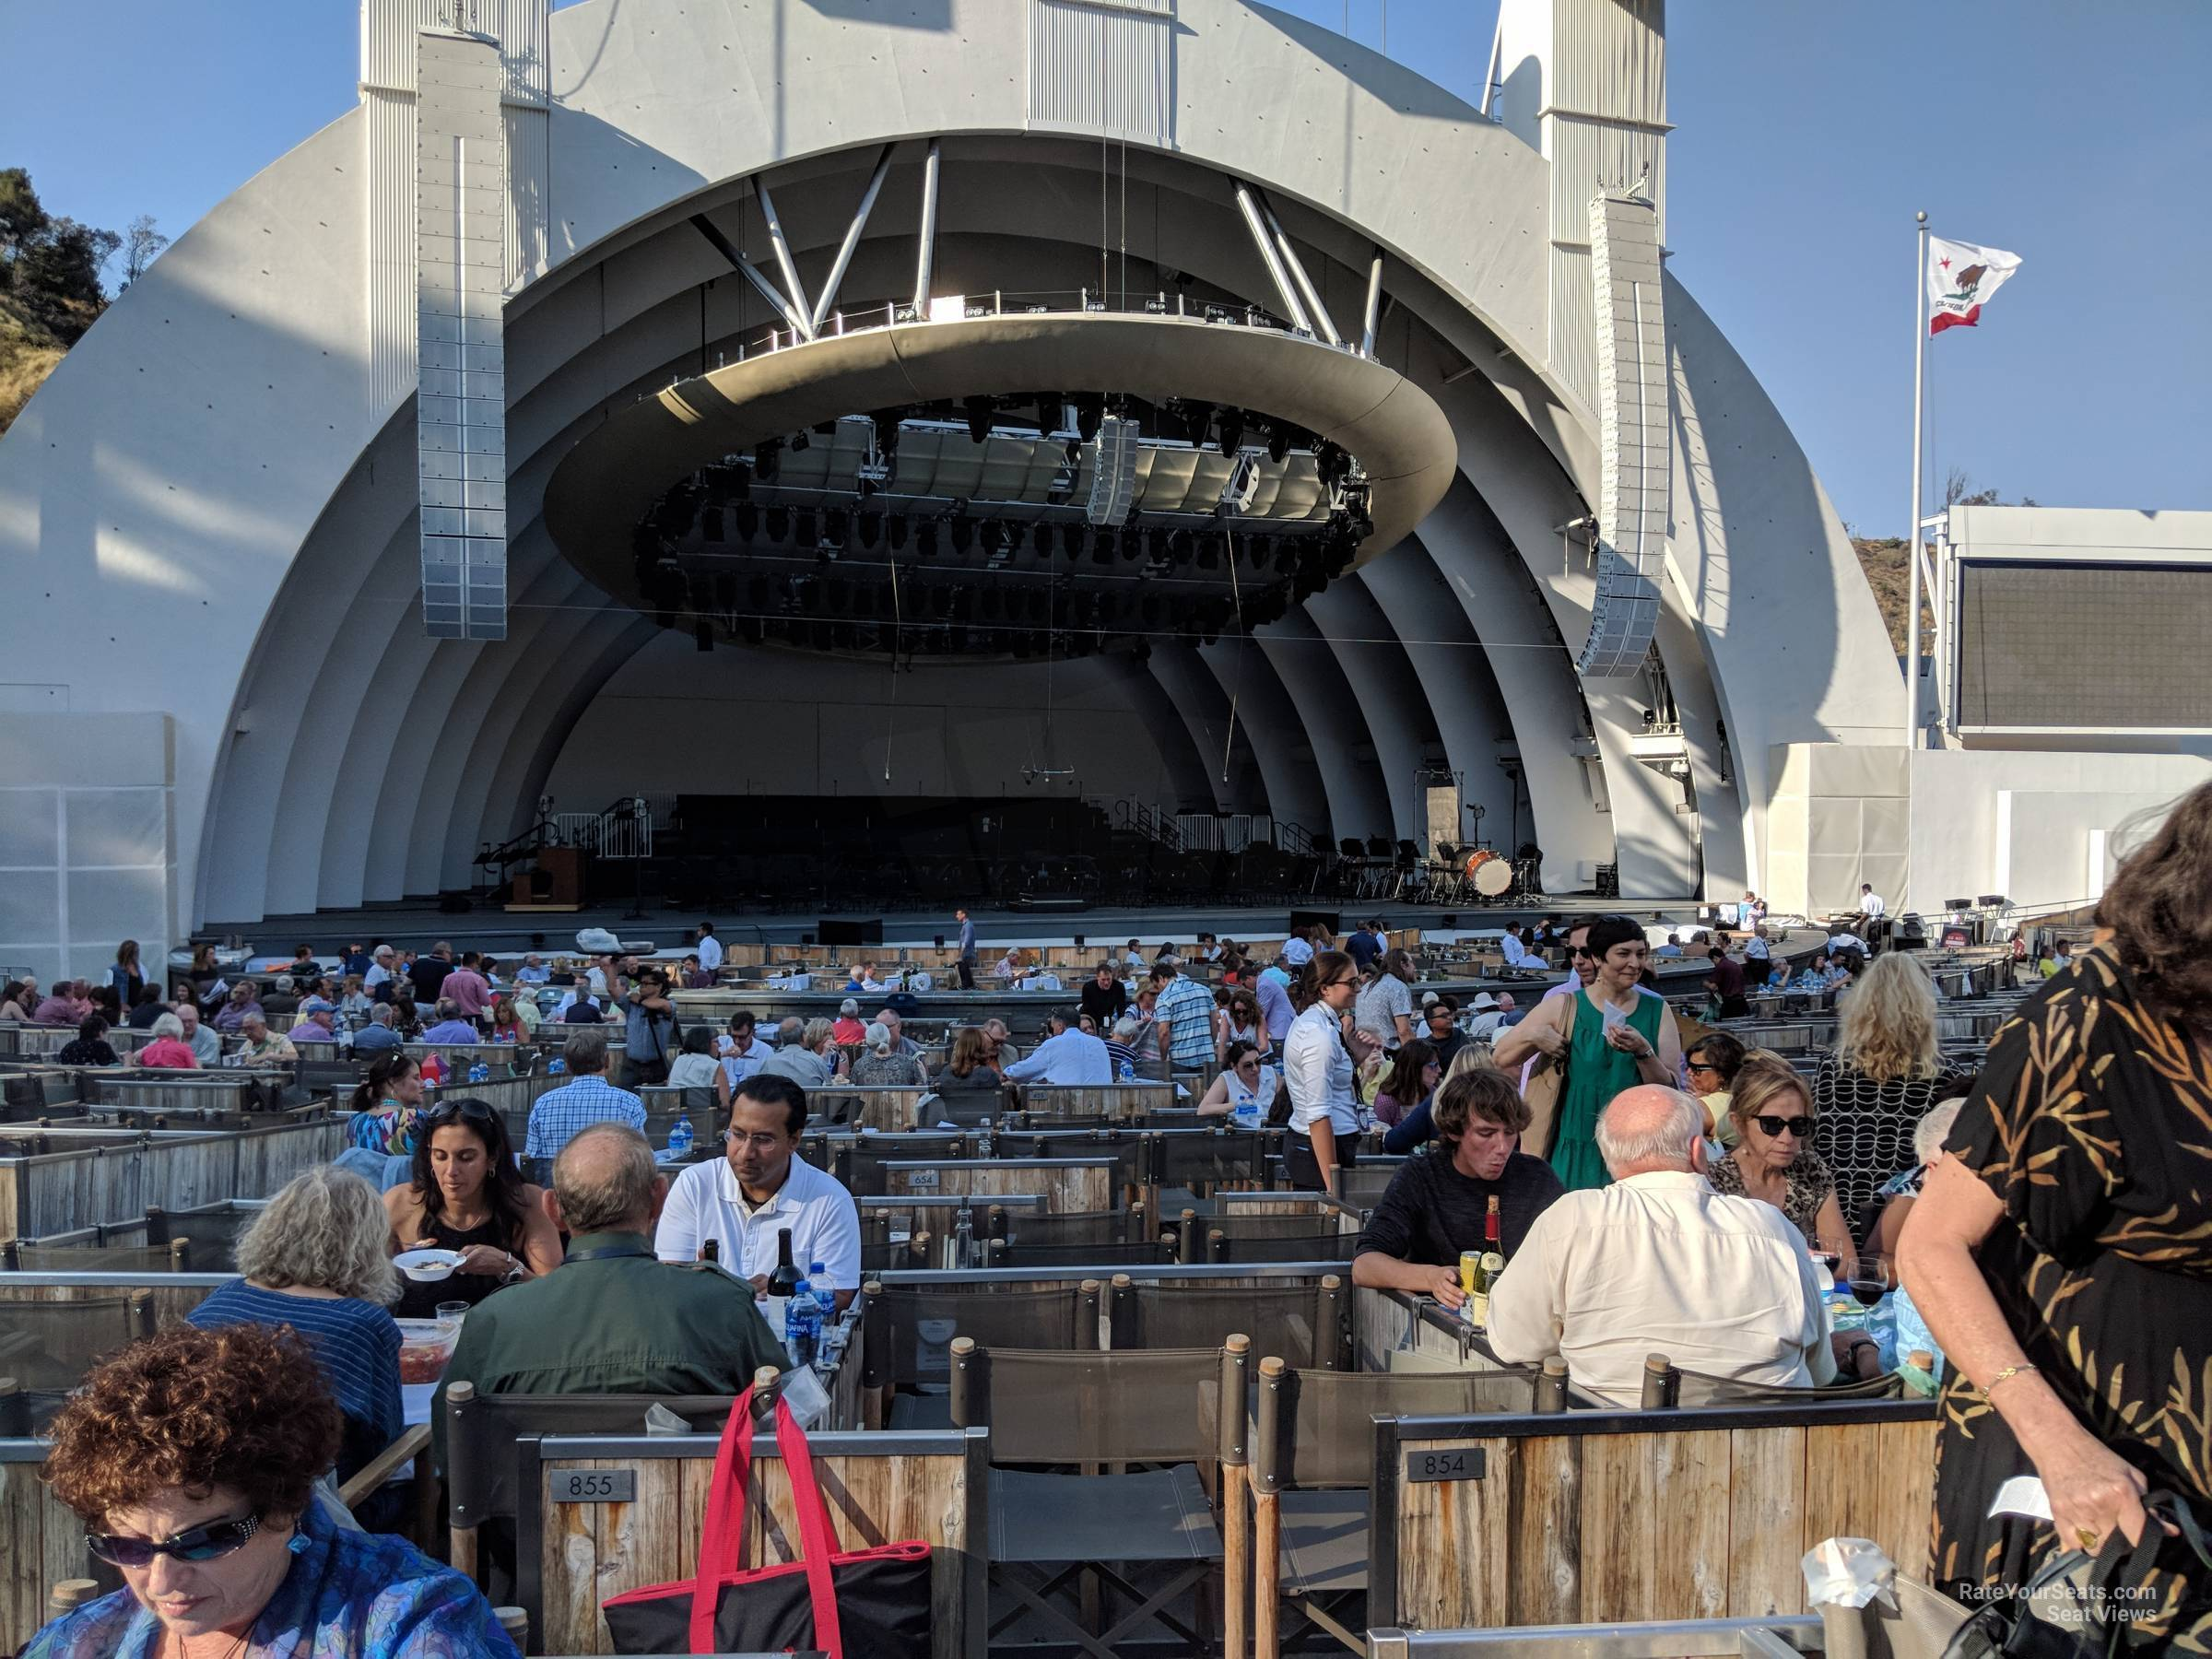 Hollywood Bowl Concerts >> Hollywood Bowl Garden 5 - RateYourSeats.com